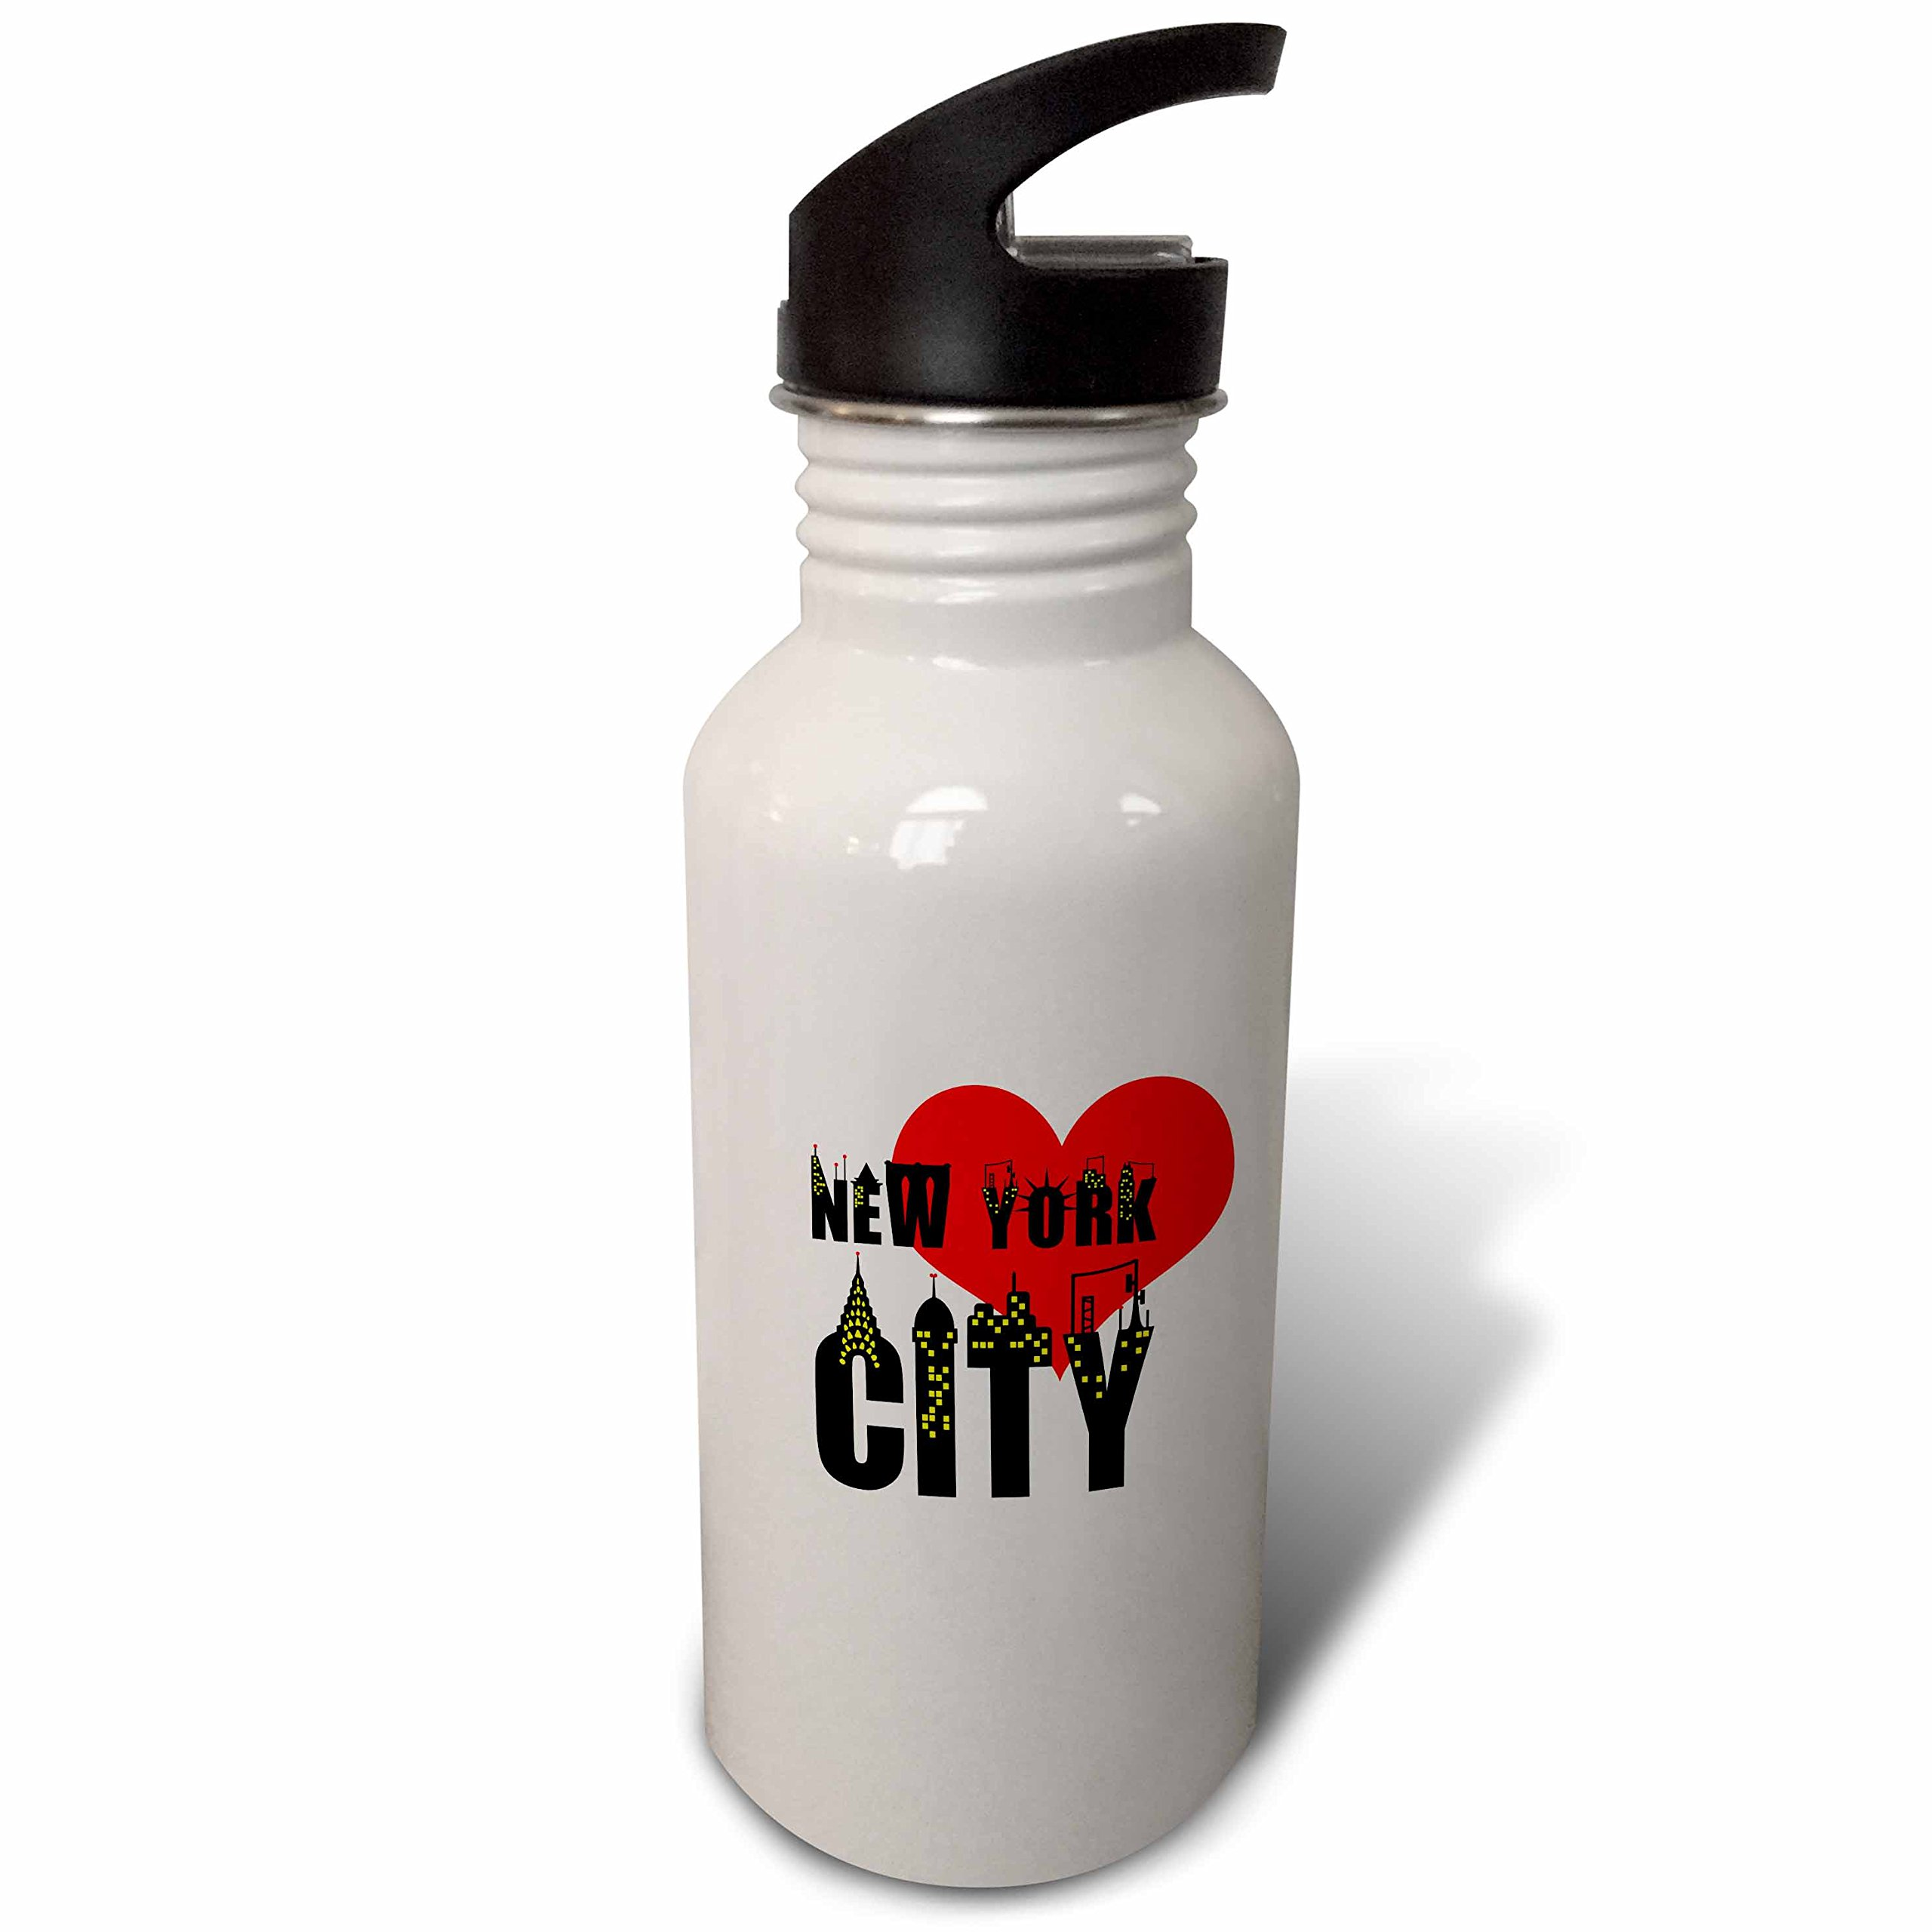 3dRose Alexis Design - American Cities - Stylish text New York City, red heart, shining windows on black - Flip Straw 21oz Water Bottle (wb_286453_2)